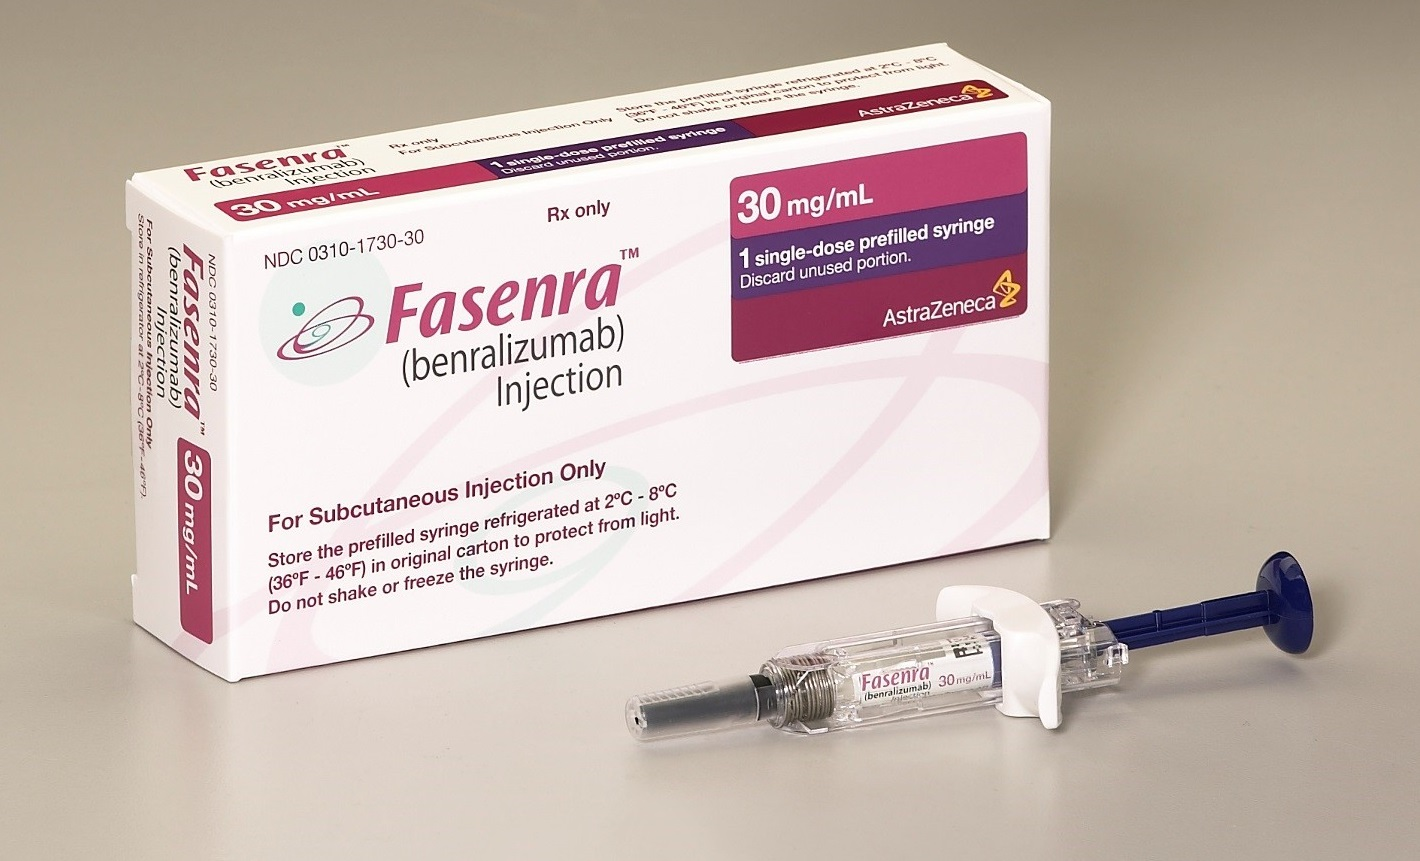 AstraZeneca Asthma Drug Fasenra Receives FDA Approval